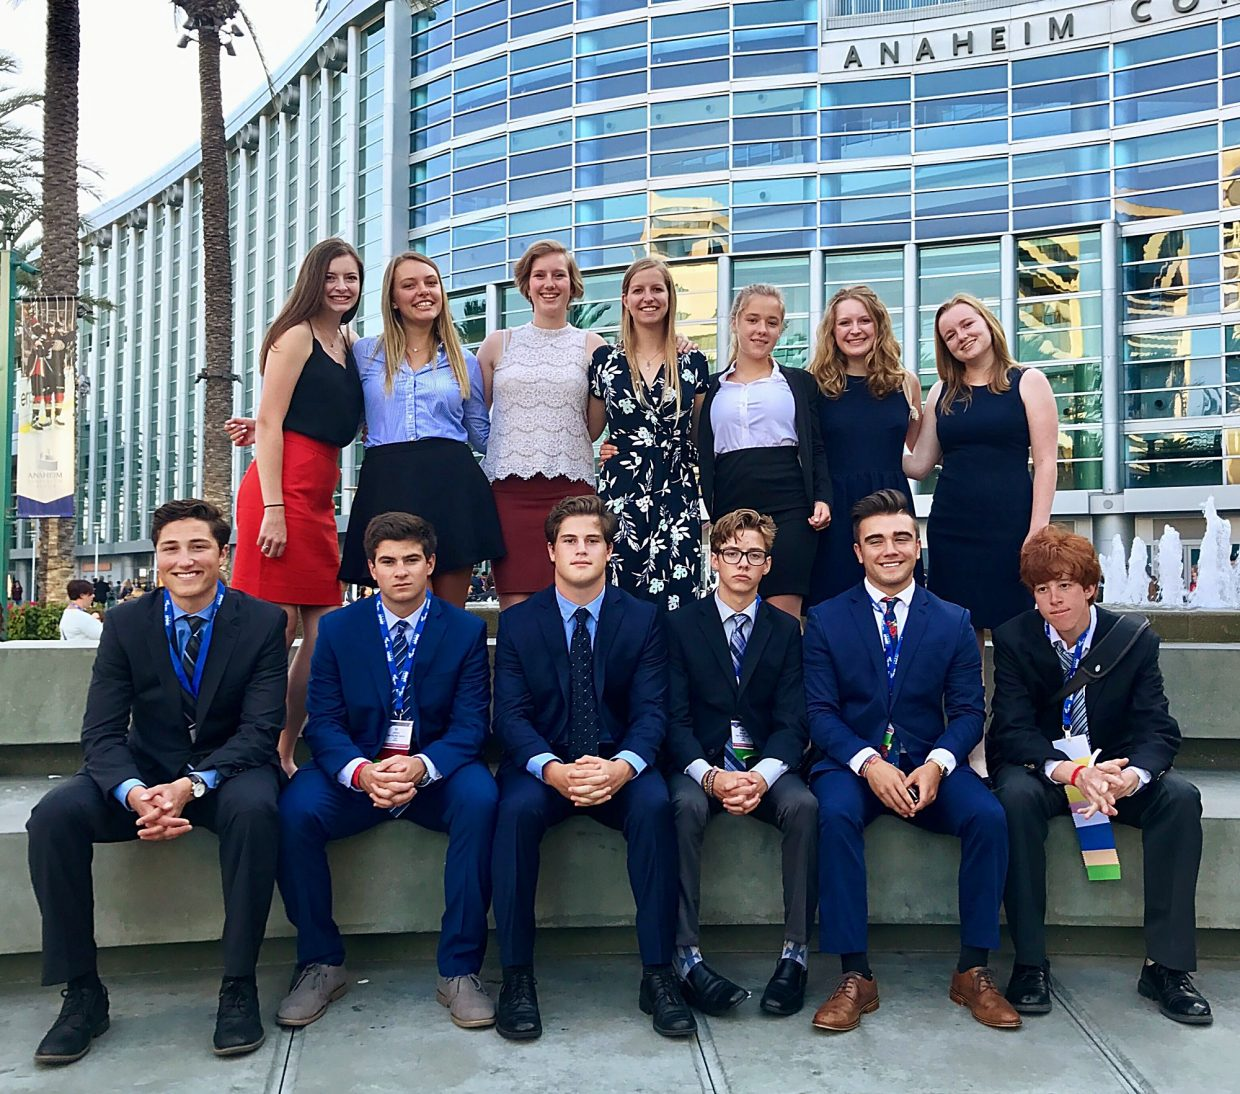 Park City High School S Future Business Leaders Of America Triples In Size And Success Parkrecord Com